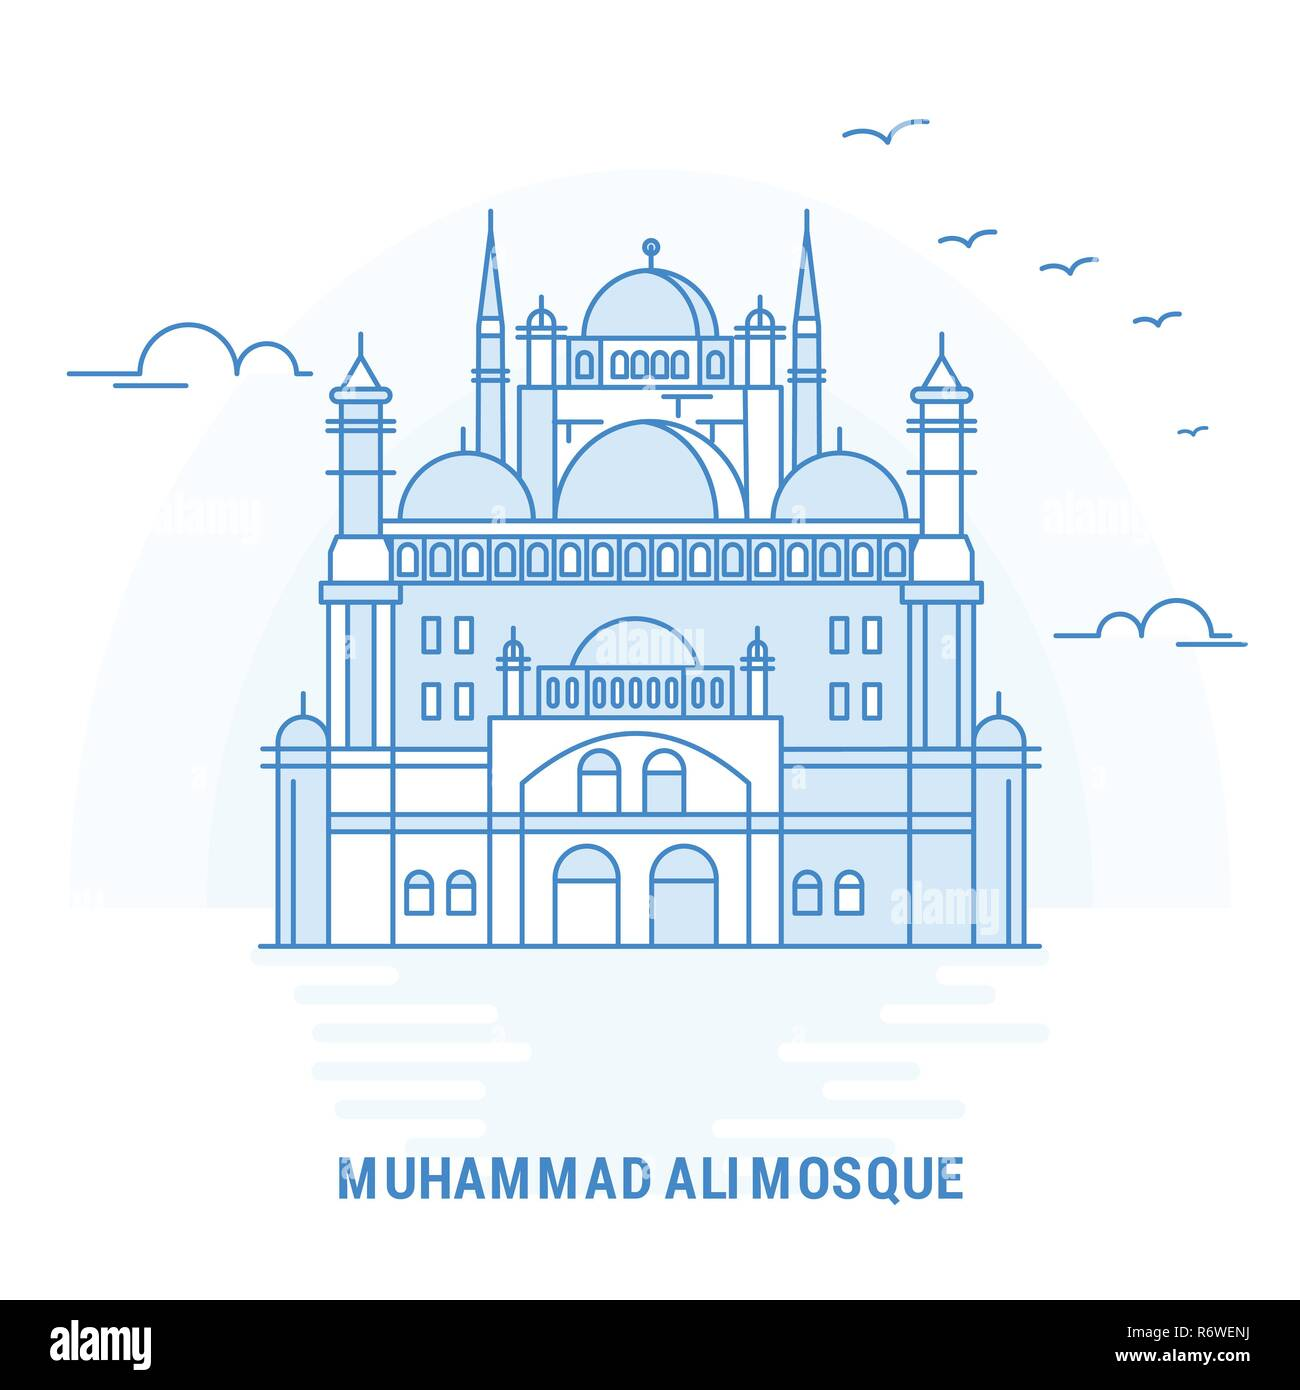 MUHAMMAD ALI MOSQUE Blue Landmark. Creative background and Poster Template - Stock Image